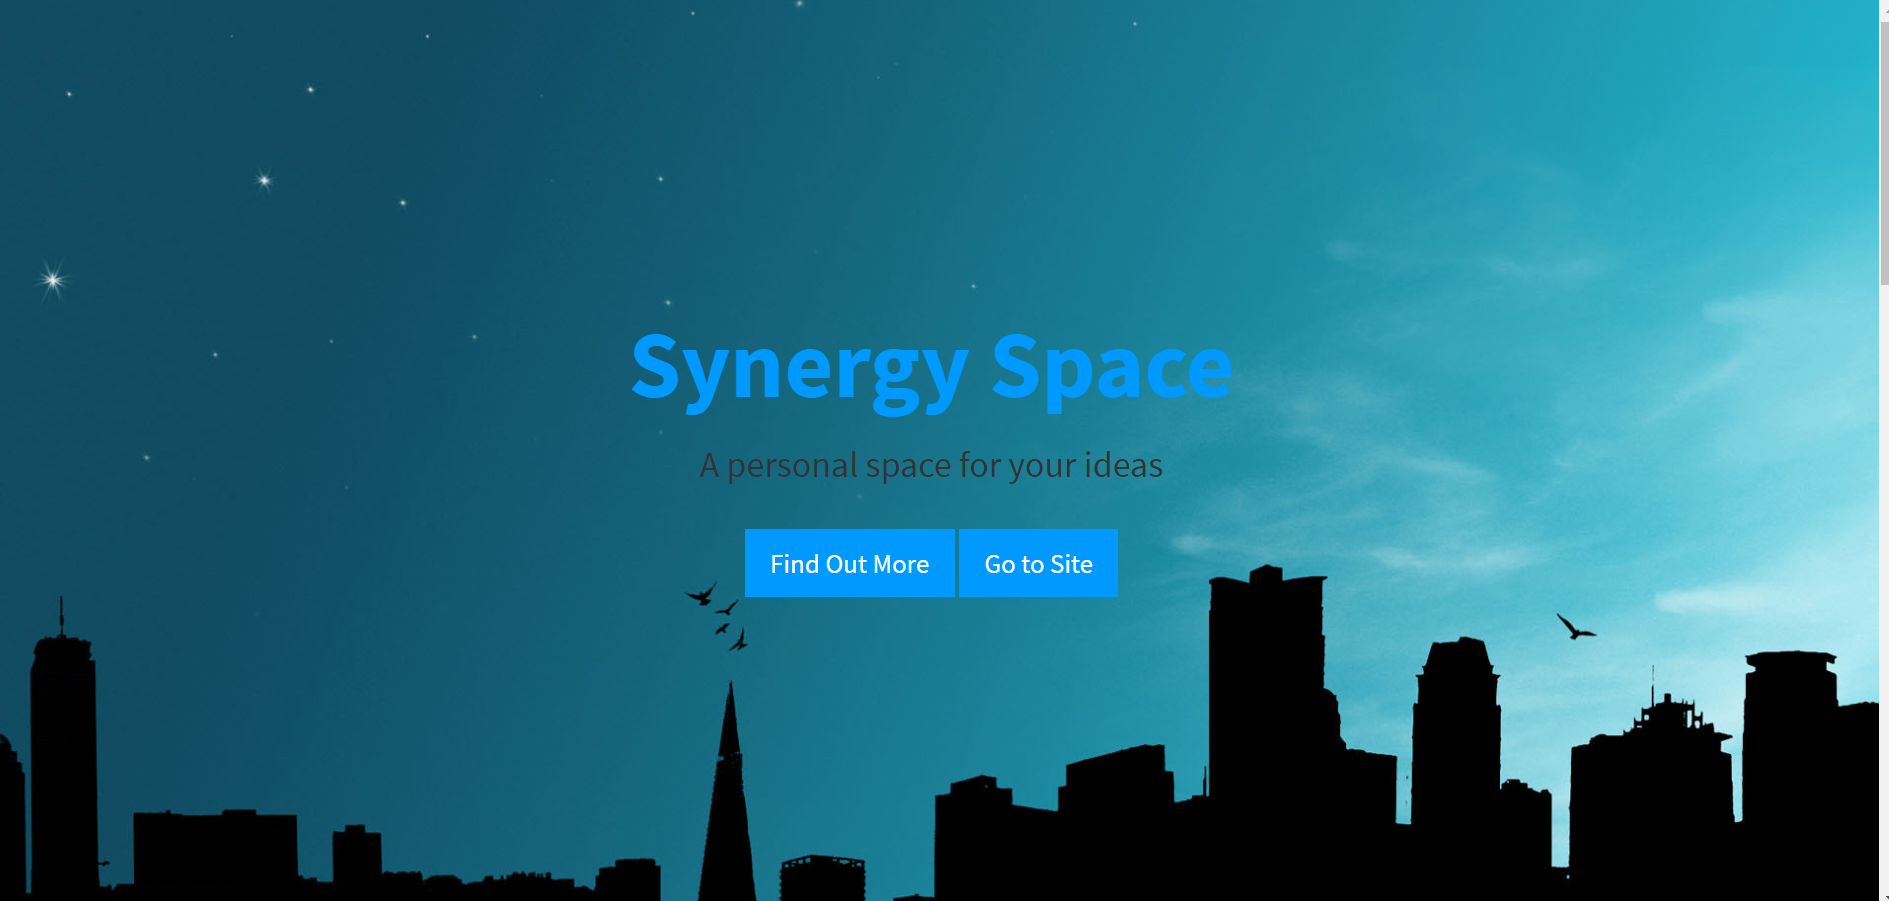 Synergy Space